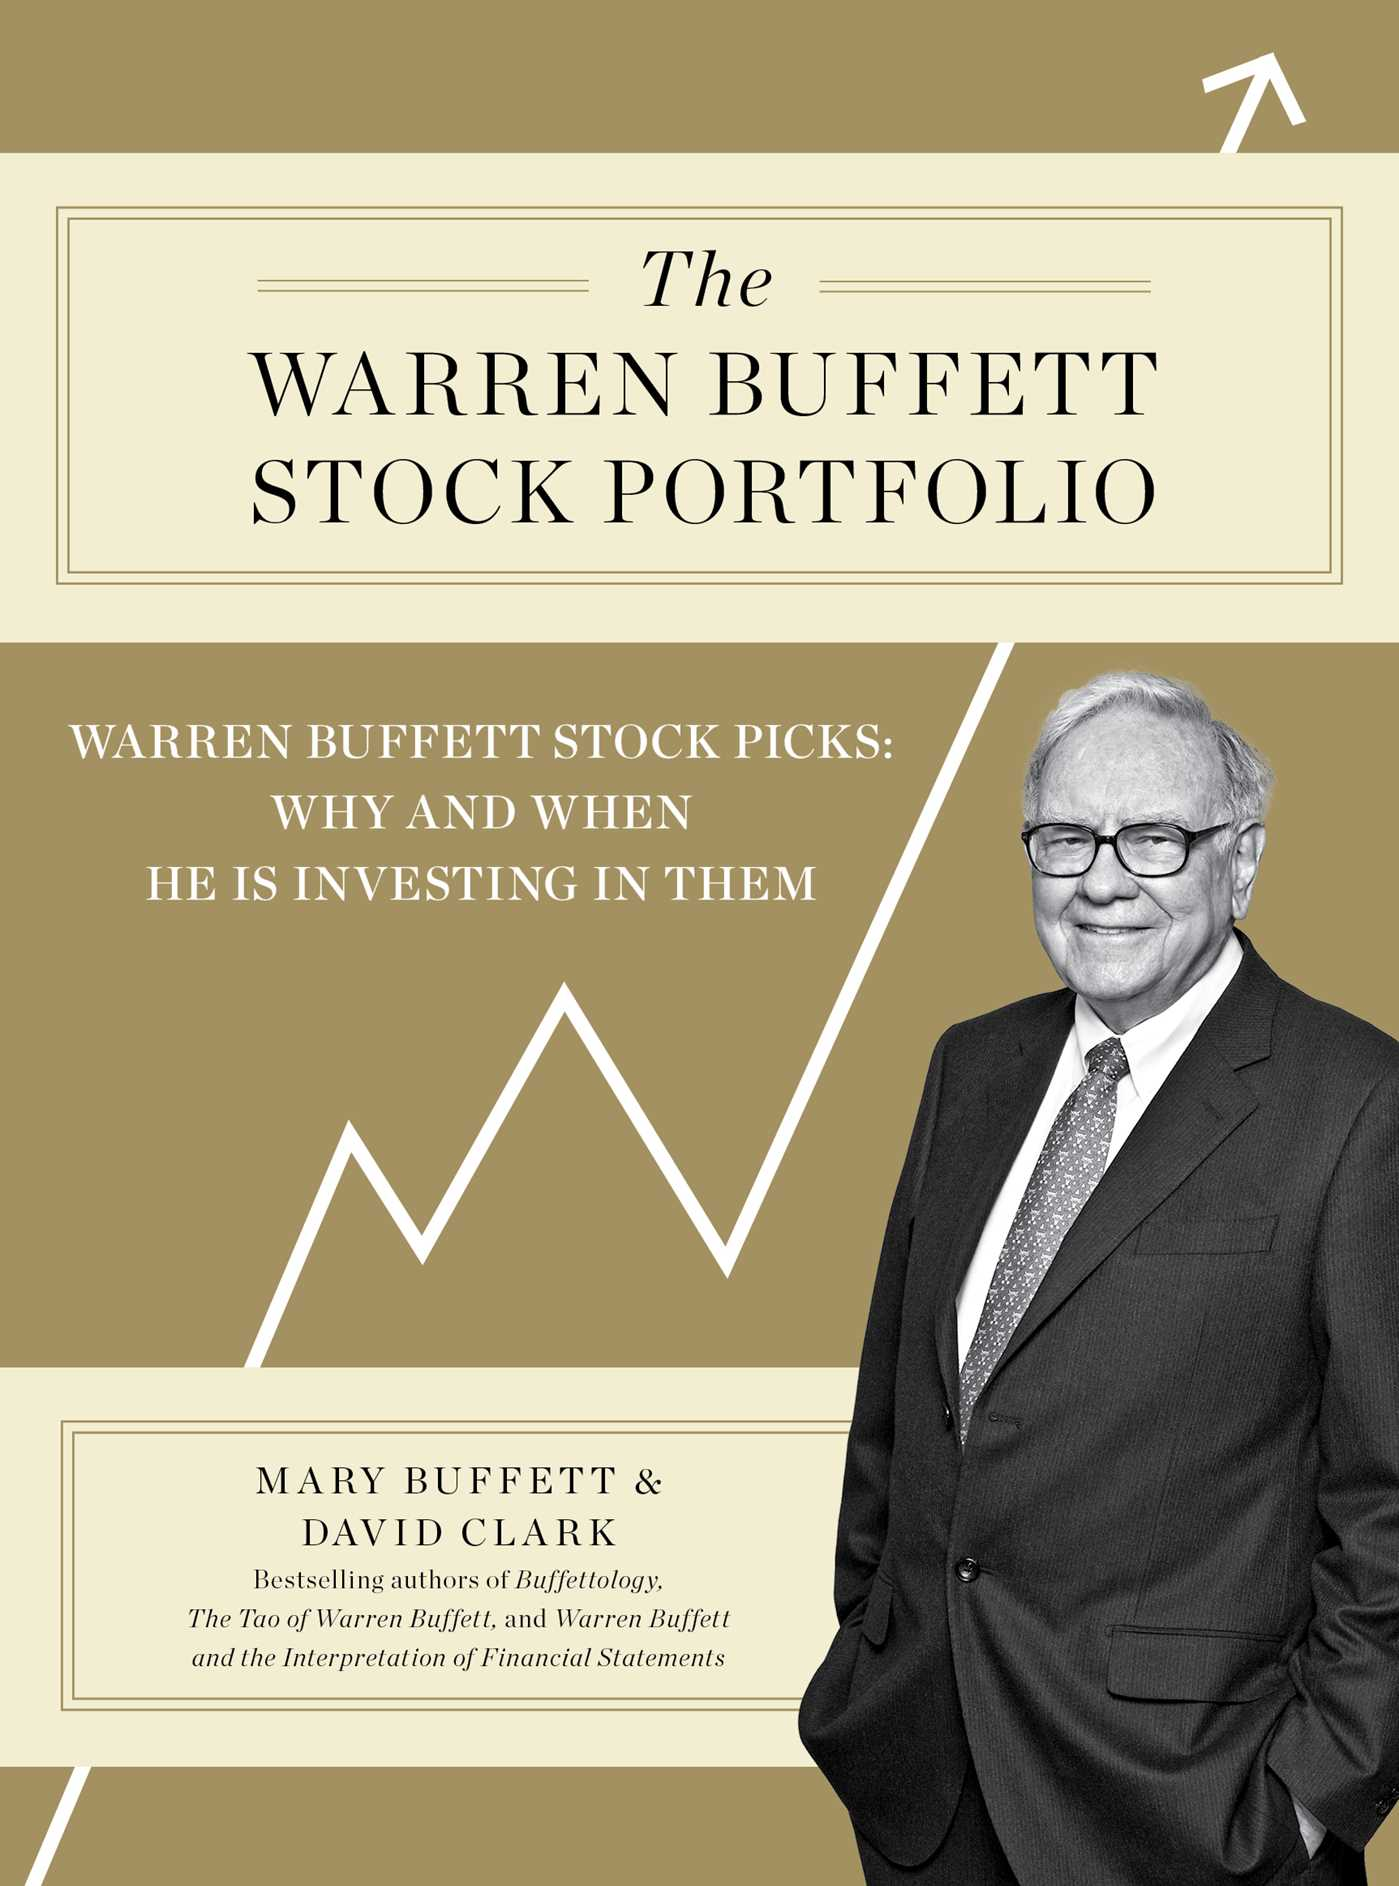 The warren buffett stock portfolio 9781451606485 hr